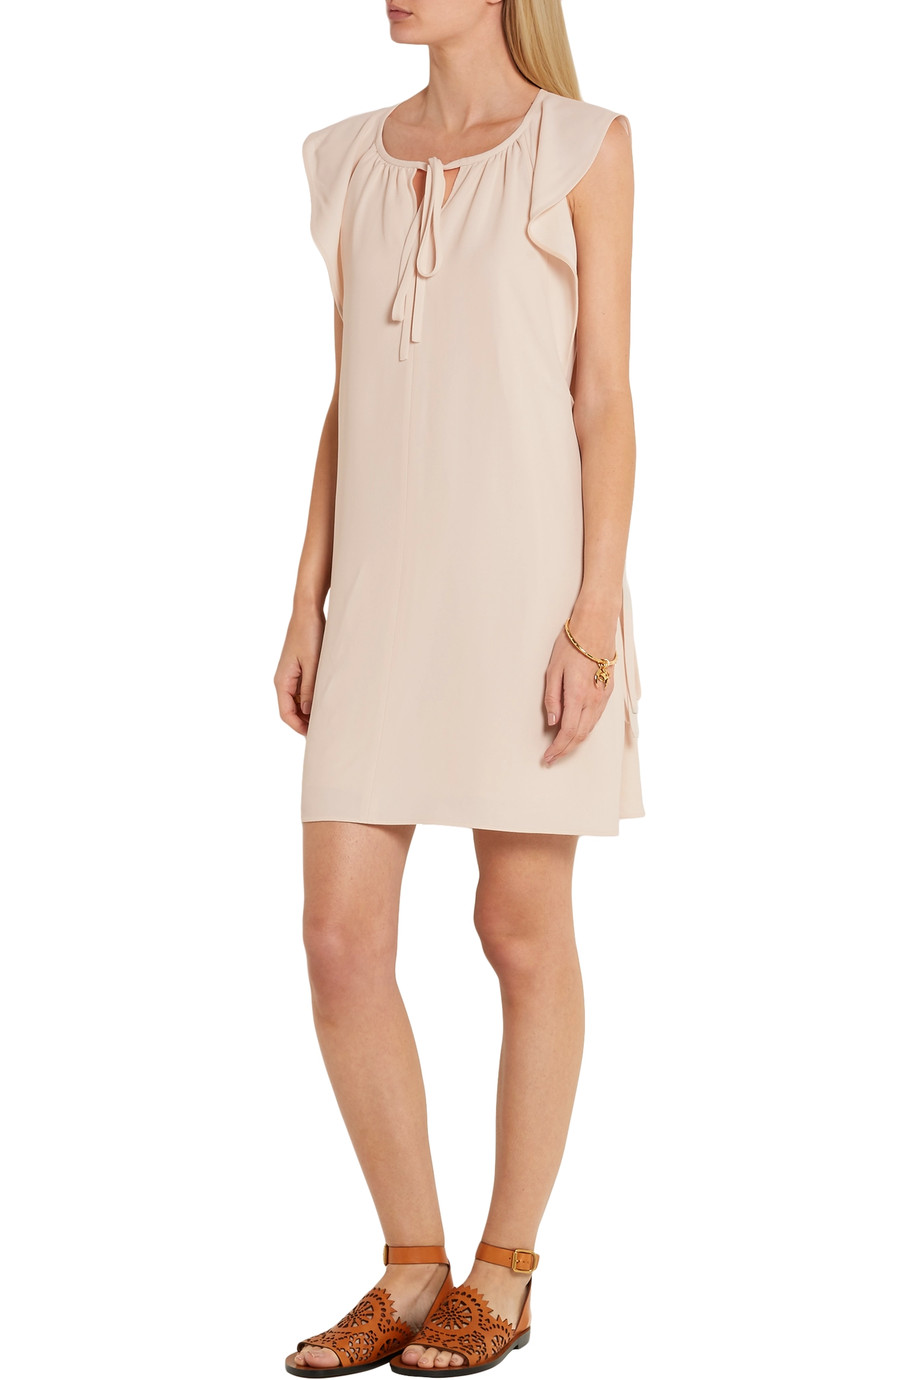 mini dresses Chloé buy mini dresses Chloé internet shop